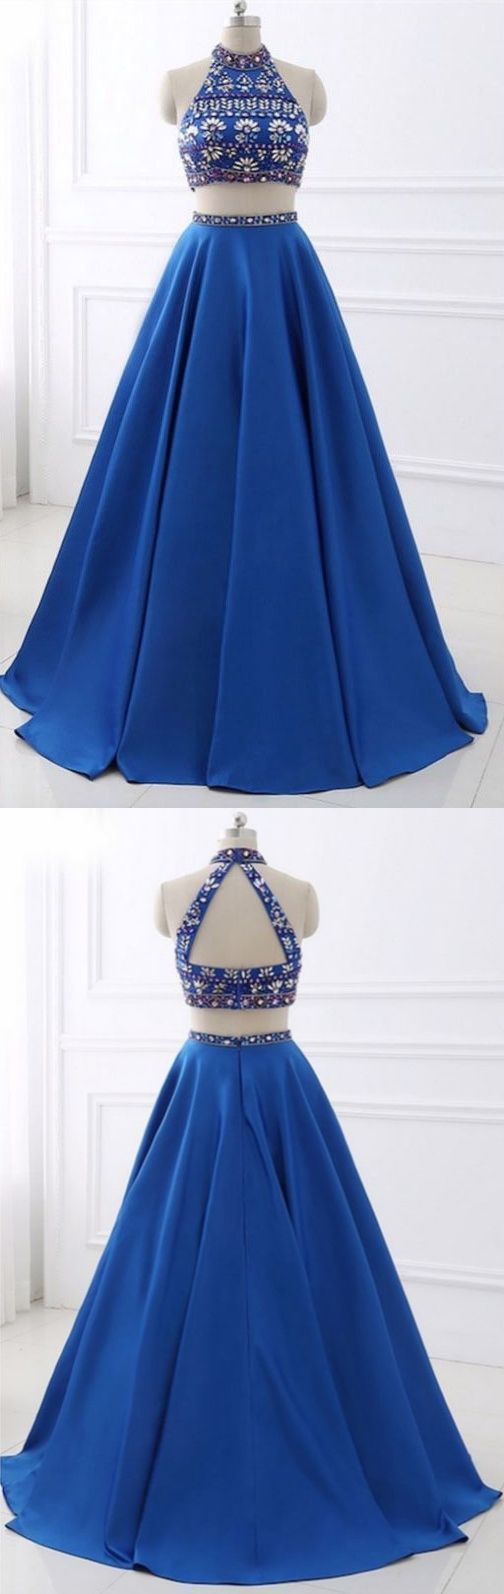 Elegant Blue Two Piece Prom Dresses, Halter Homecoming Dress, Long Evening Dress